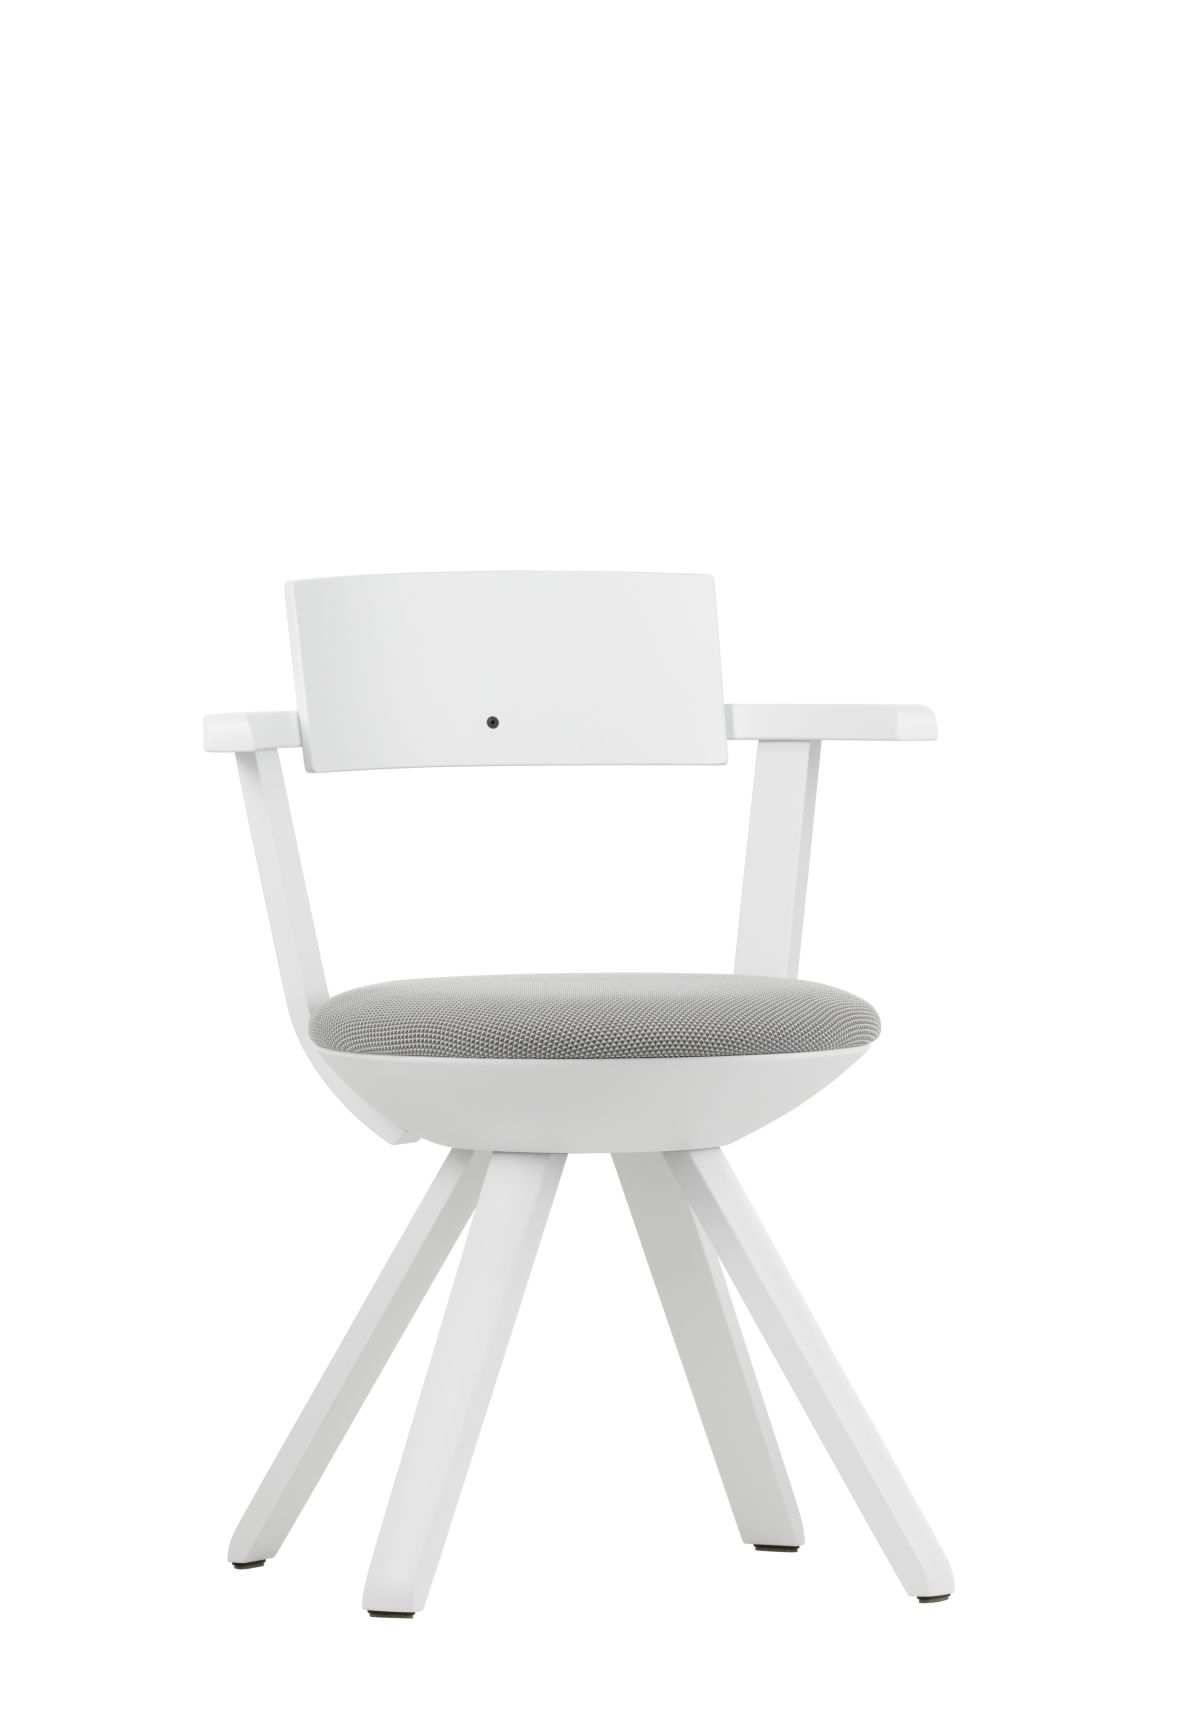 Rival-Chair-Kg002-White-Lacquer